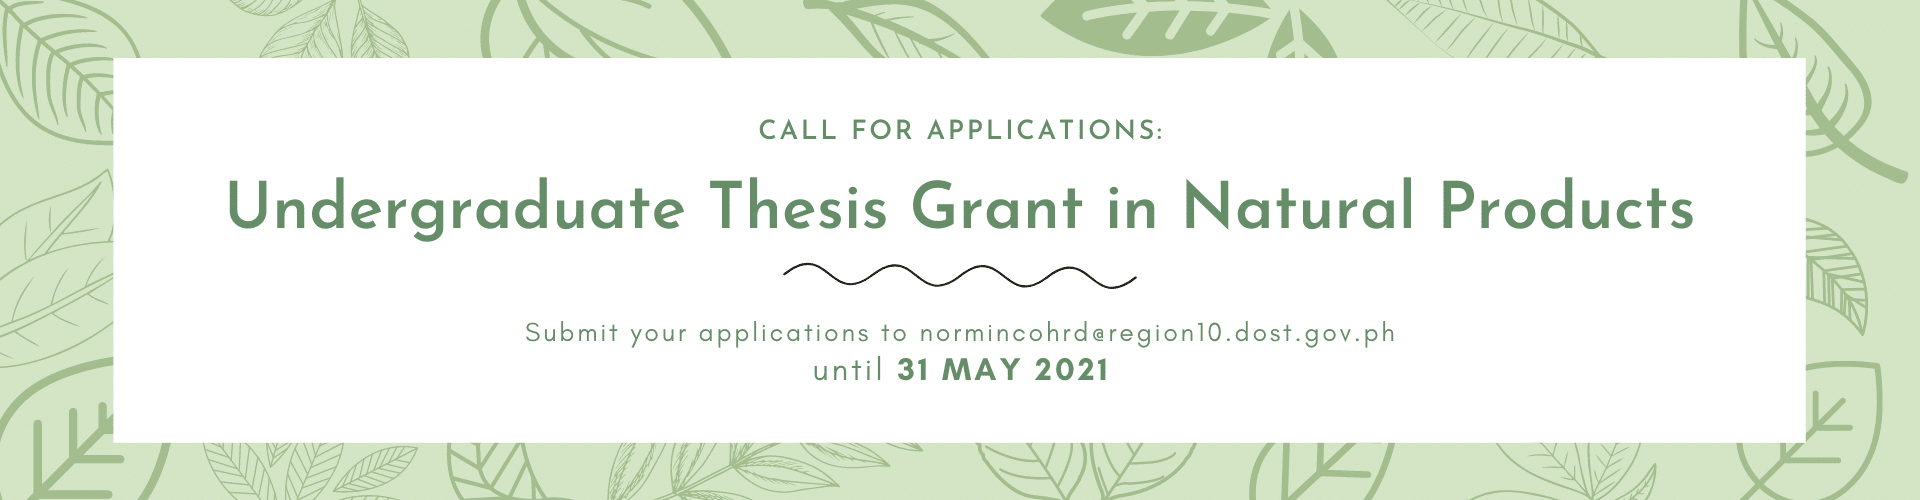 2021 undergraduate thesis grant in natural products